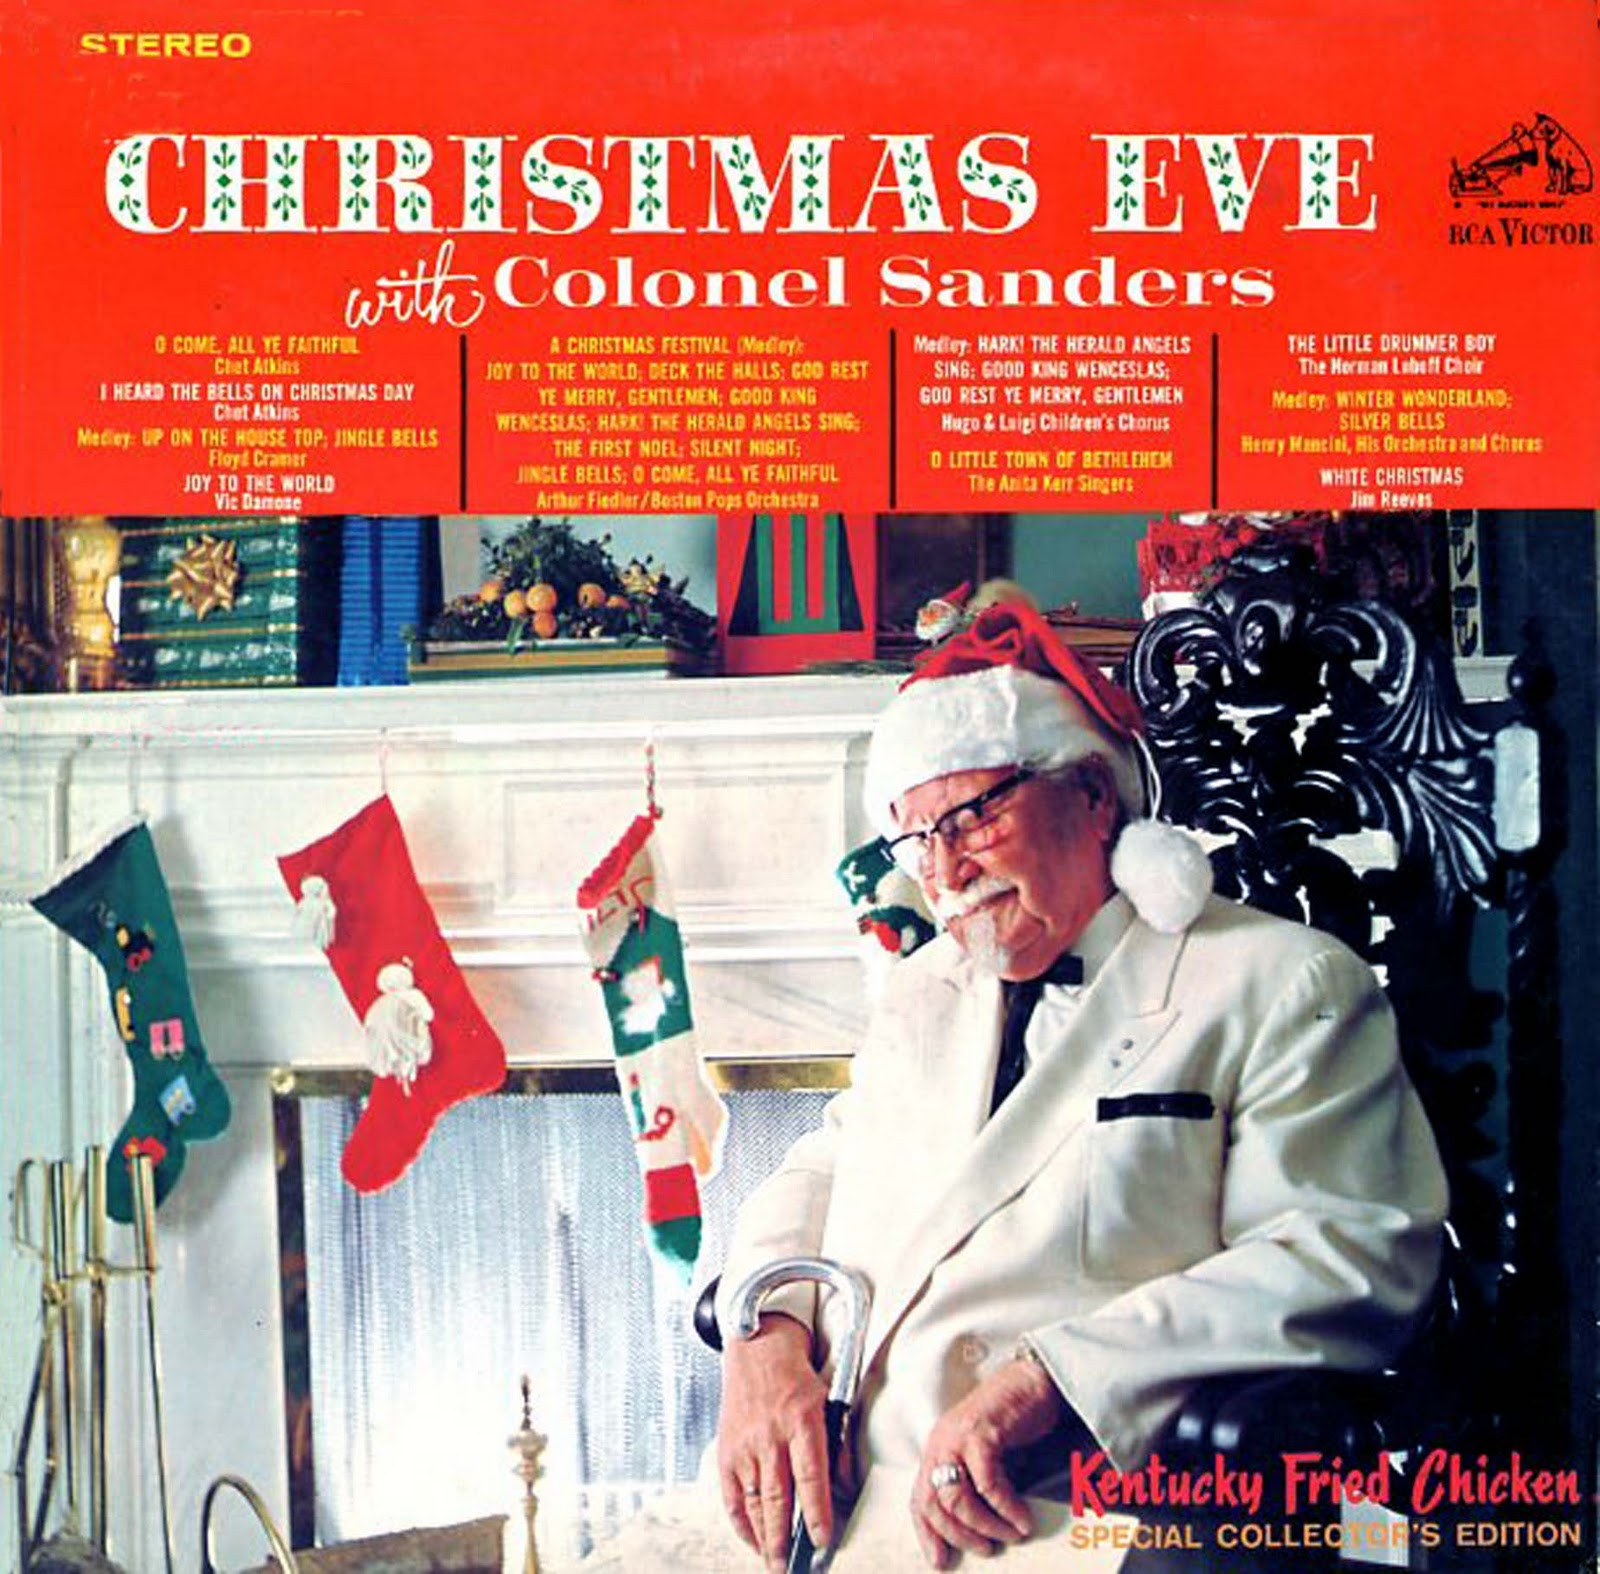 Unforgettable Christmas Music Christmas with Colonel